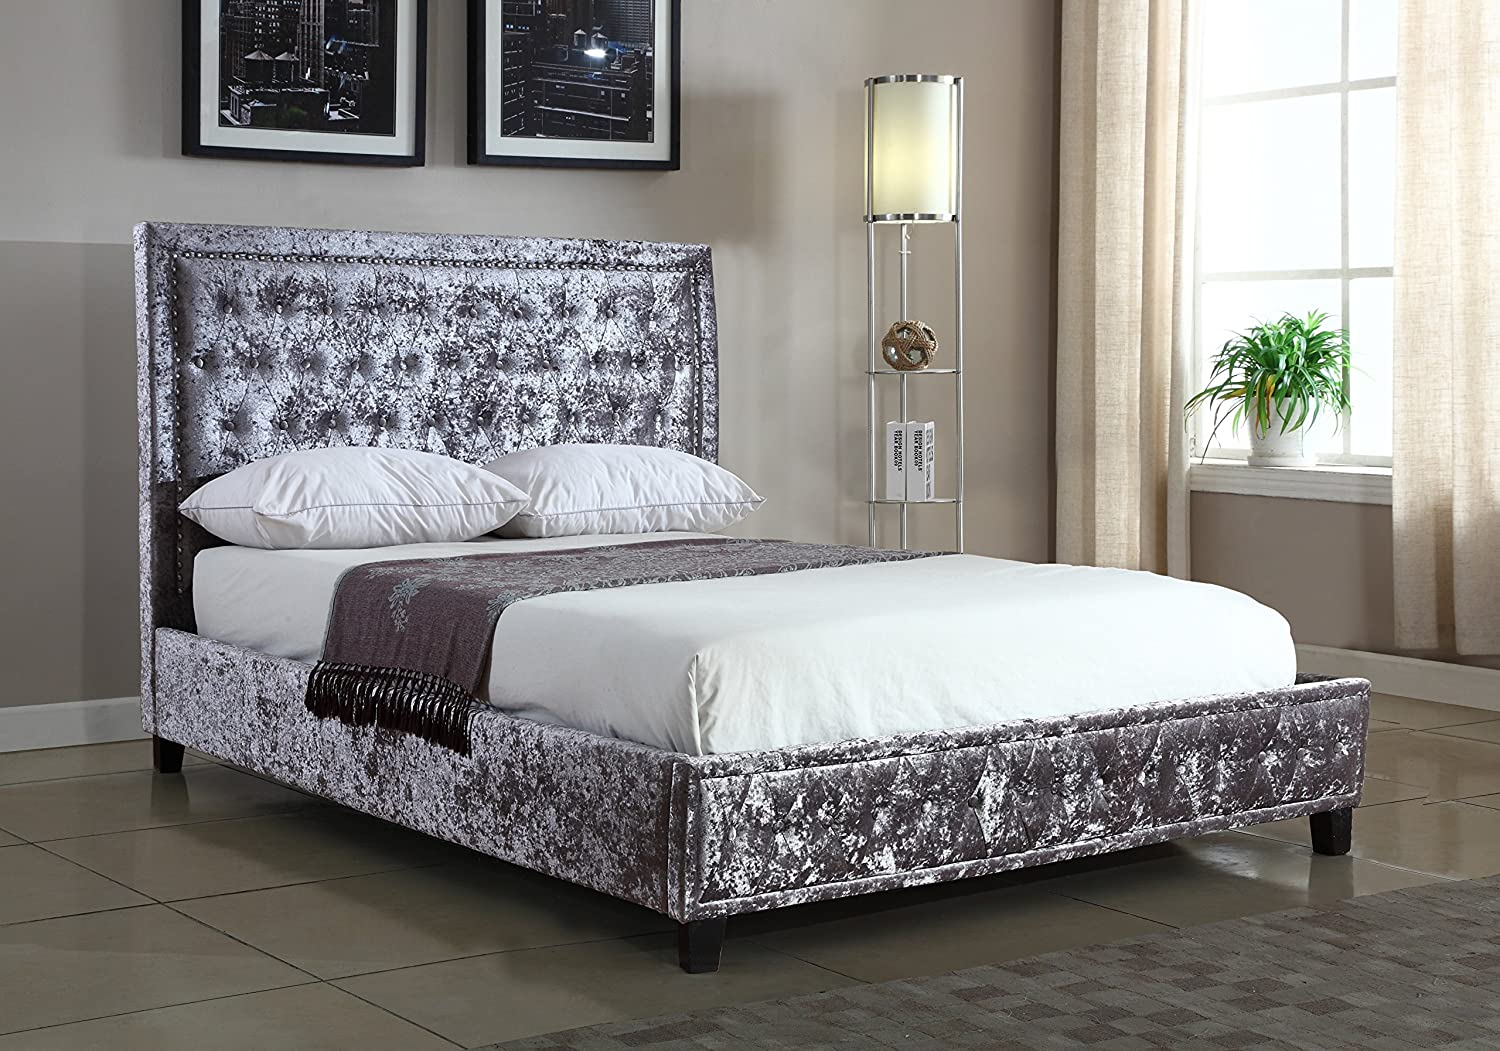 why head white you ideas footboards headboard king and should cal bedroom amazing upholstered studded of gallery buying footboard idea the consider splendid tufted design